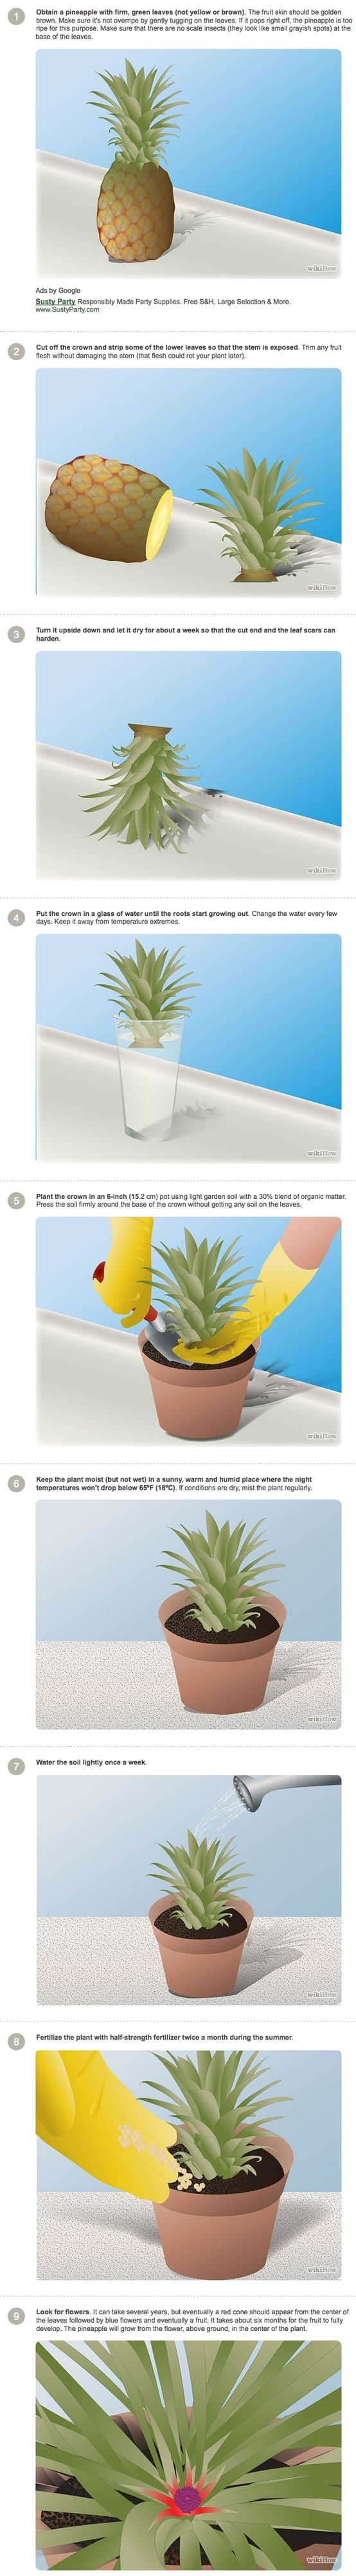 How to grow a pineapple..step by easy step!